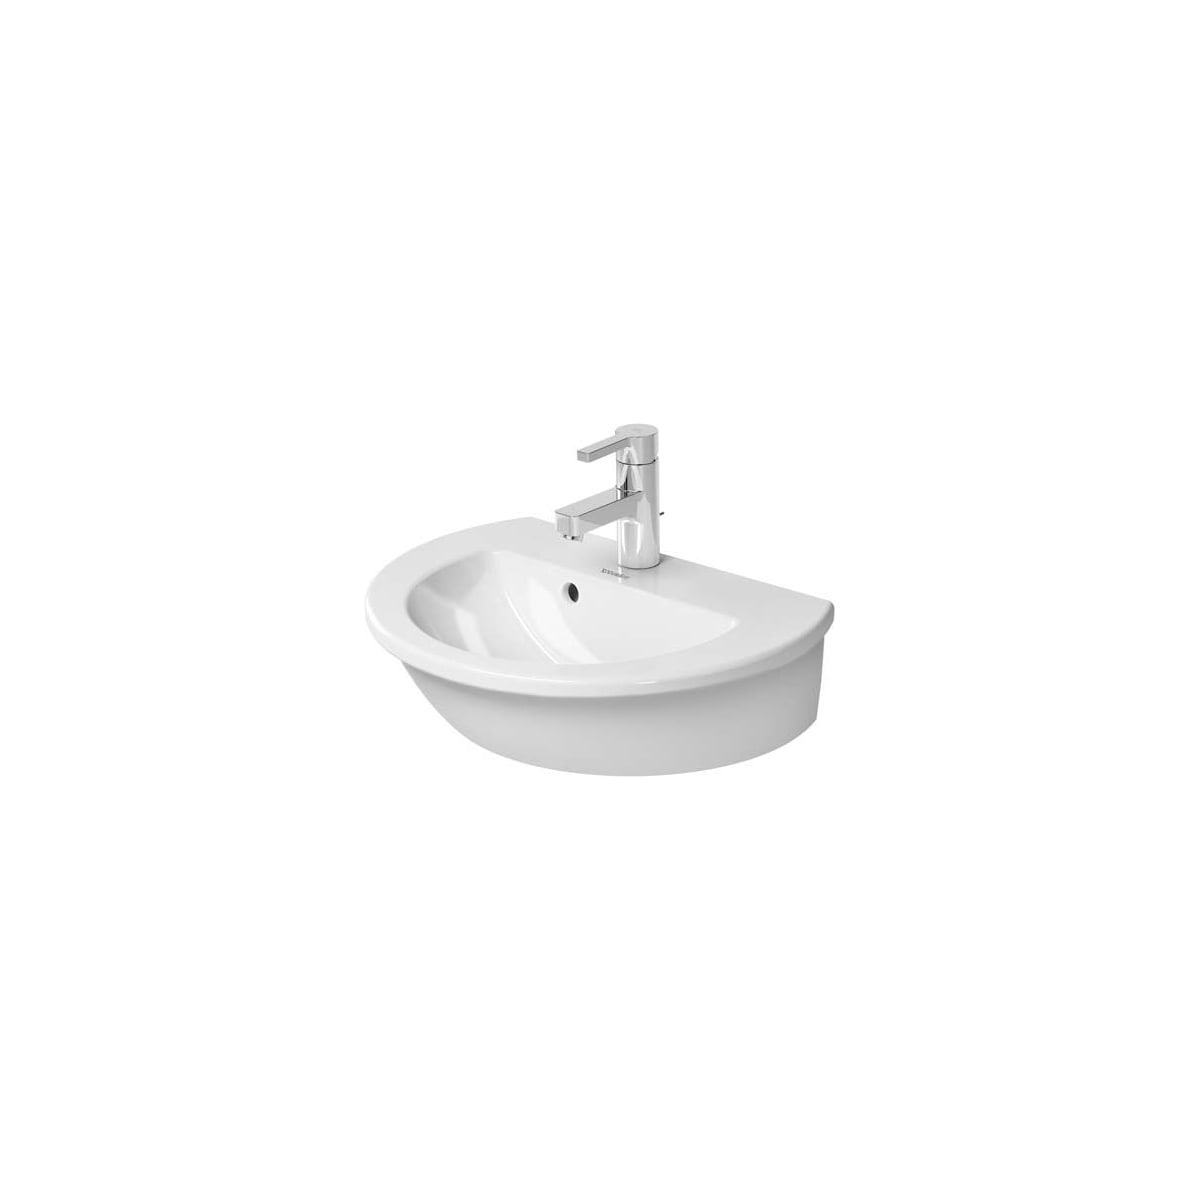 Duravit 0731470000 White Glazed Underside Darling New 18 1 2 Specialty Ceramic Wall Mounted Bathroom Sink With Overflow And 1 Faucet Hole Faucet Com